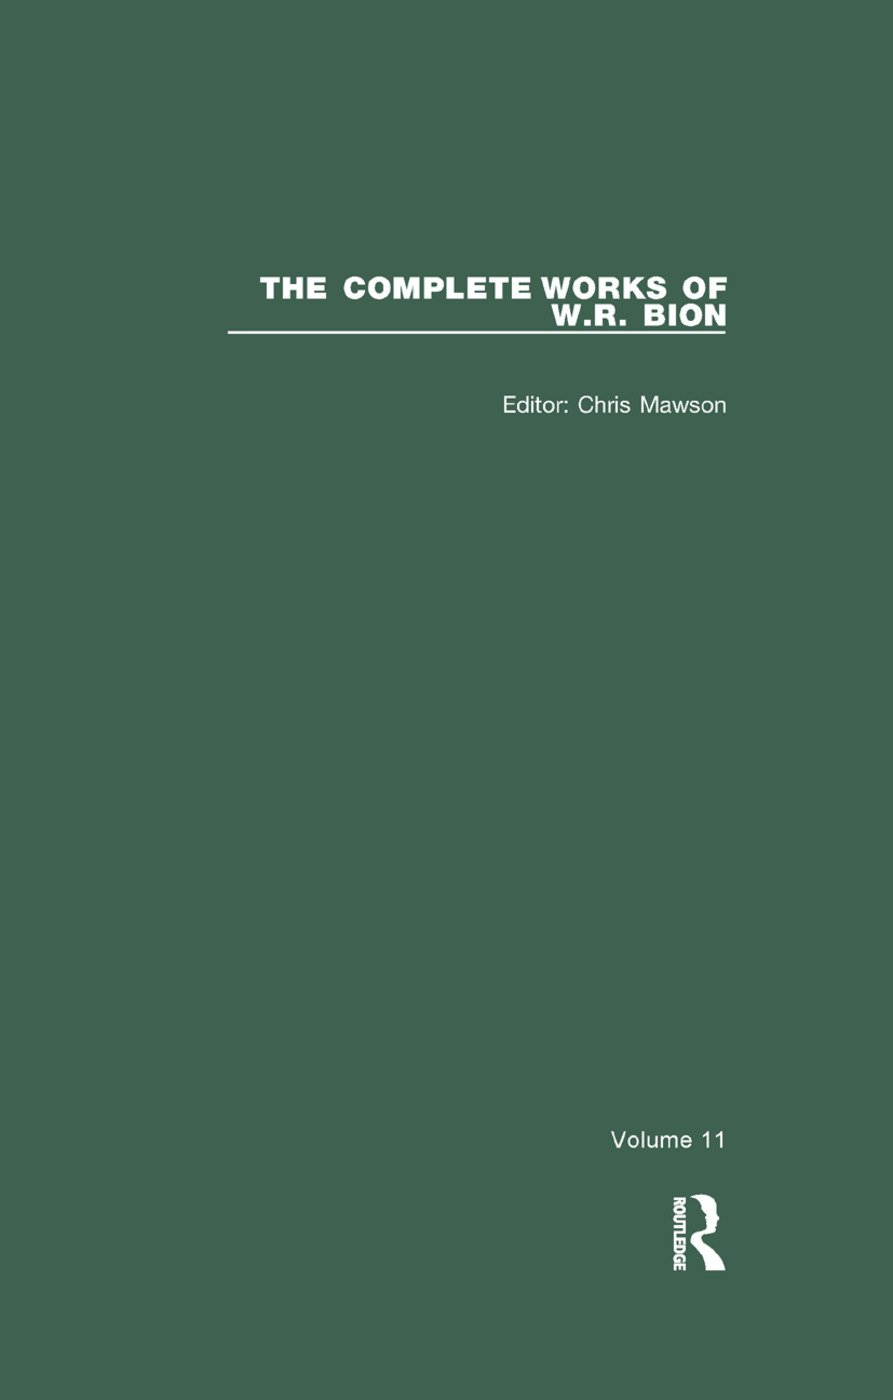 The Complete Works of W.R. Bion: Volume 11, 1st Edition (Paperback) book cover